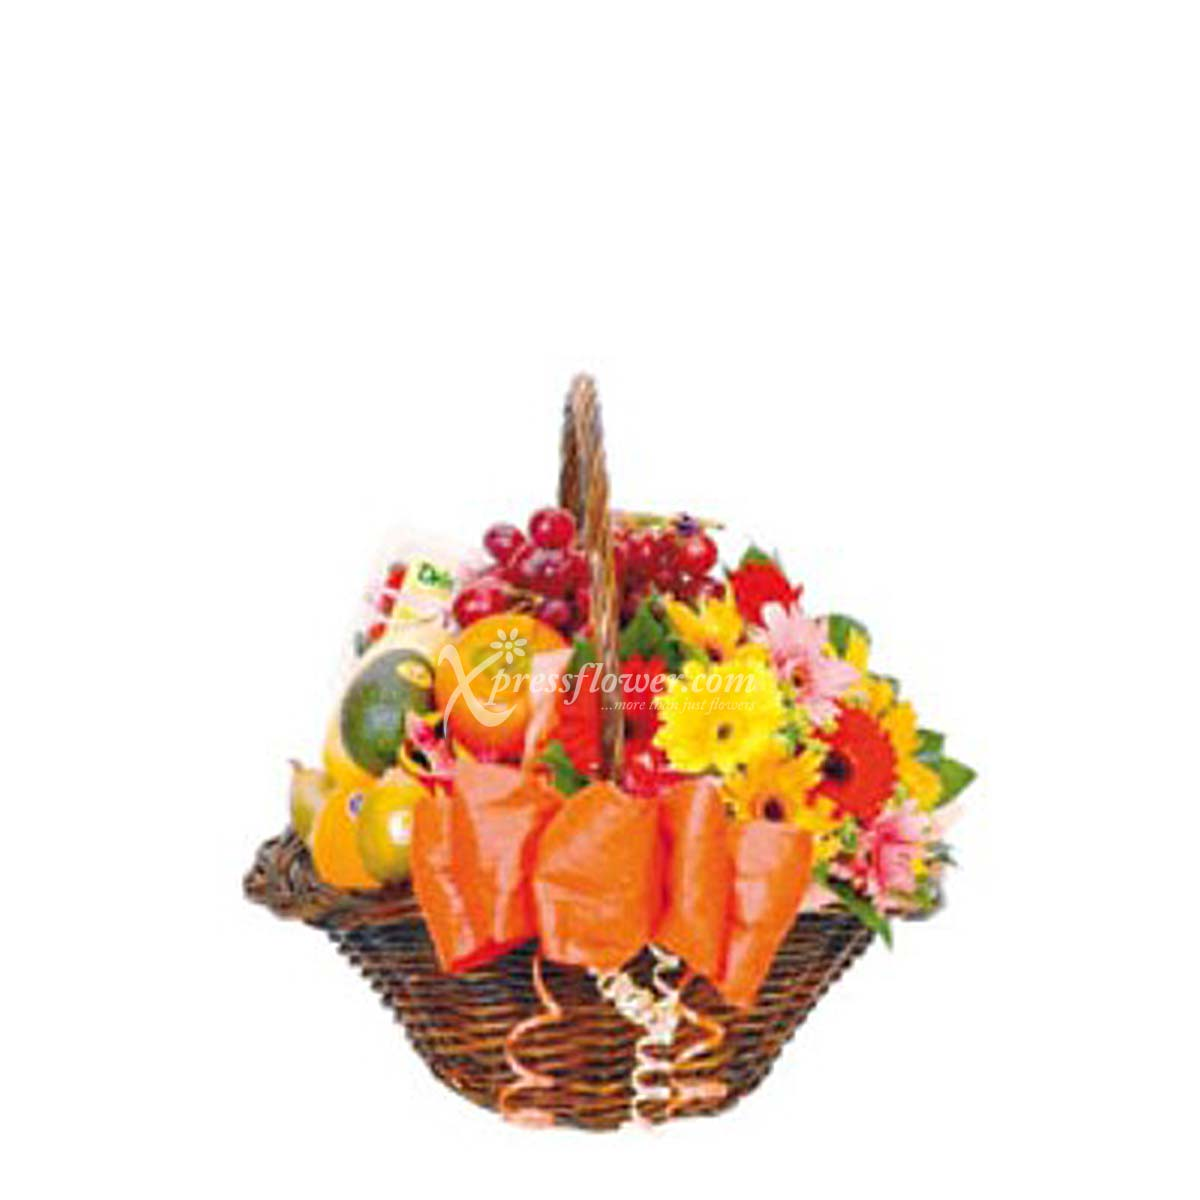 IDHK1804 FRUIT BASKET (HK)